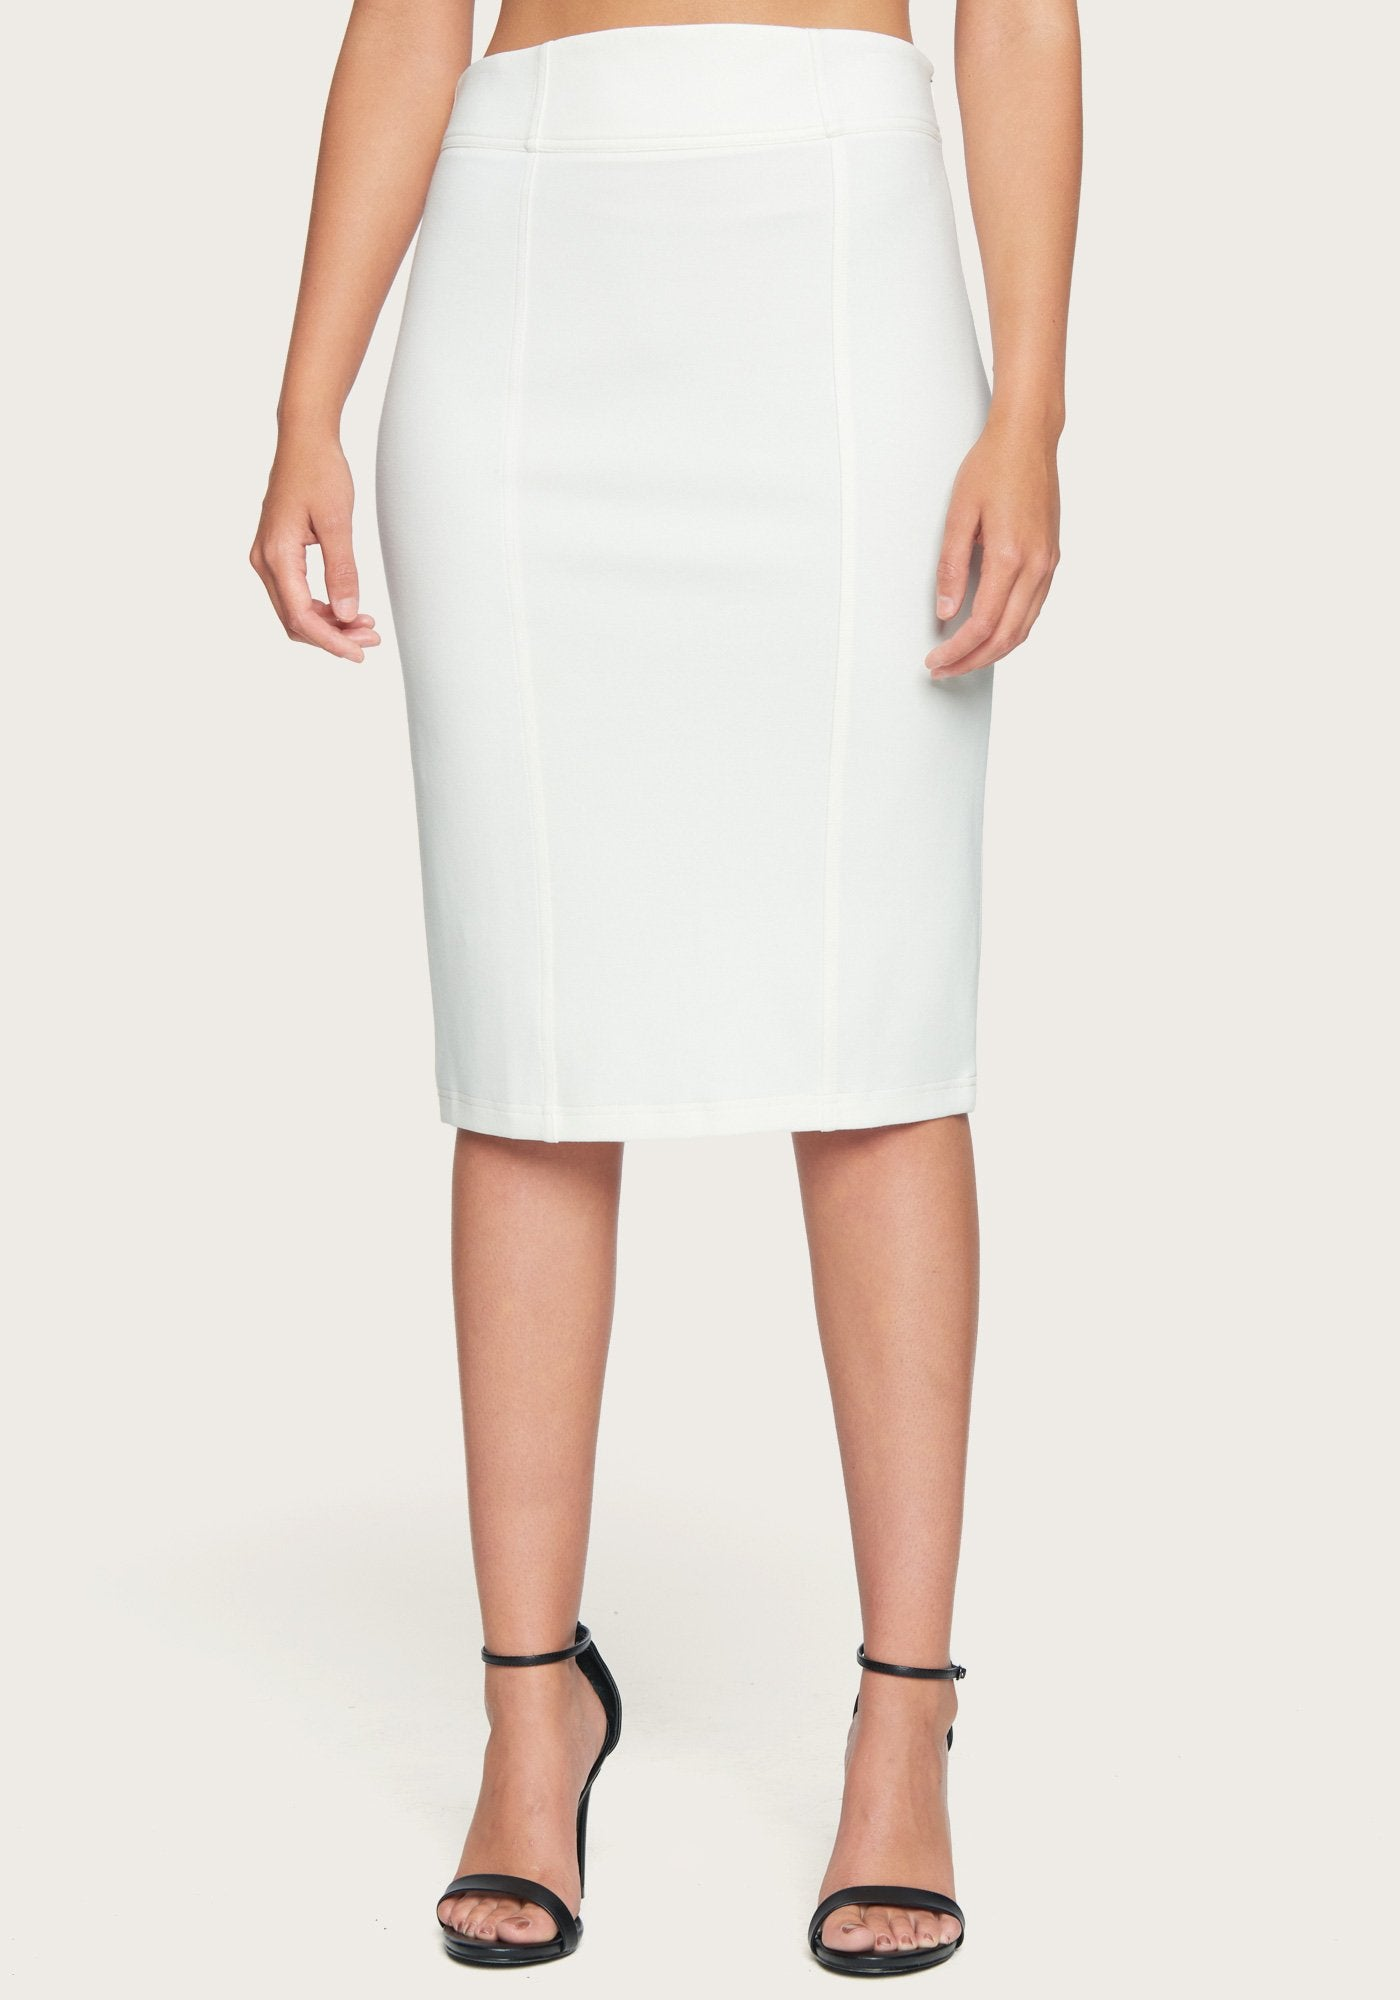 Bebe Women's Seamed Ponte Skirt, Size XXS in Egret Spandex/Nylon